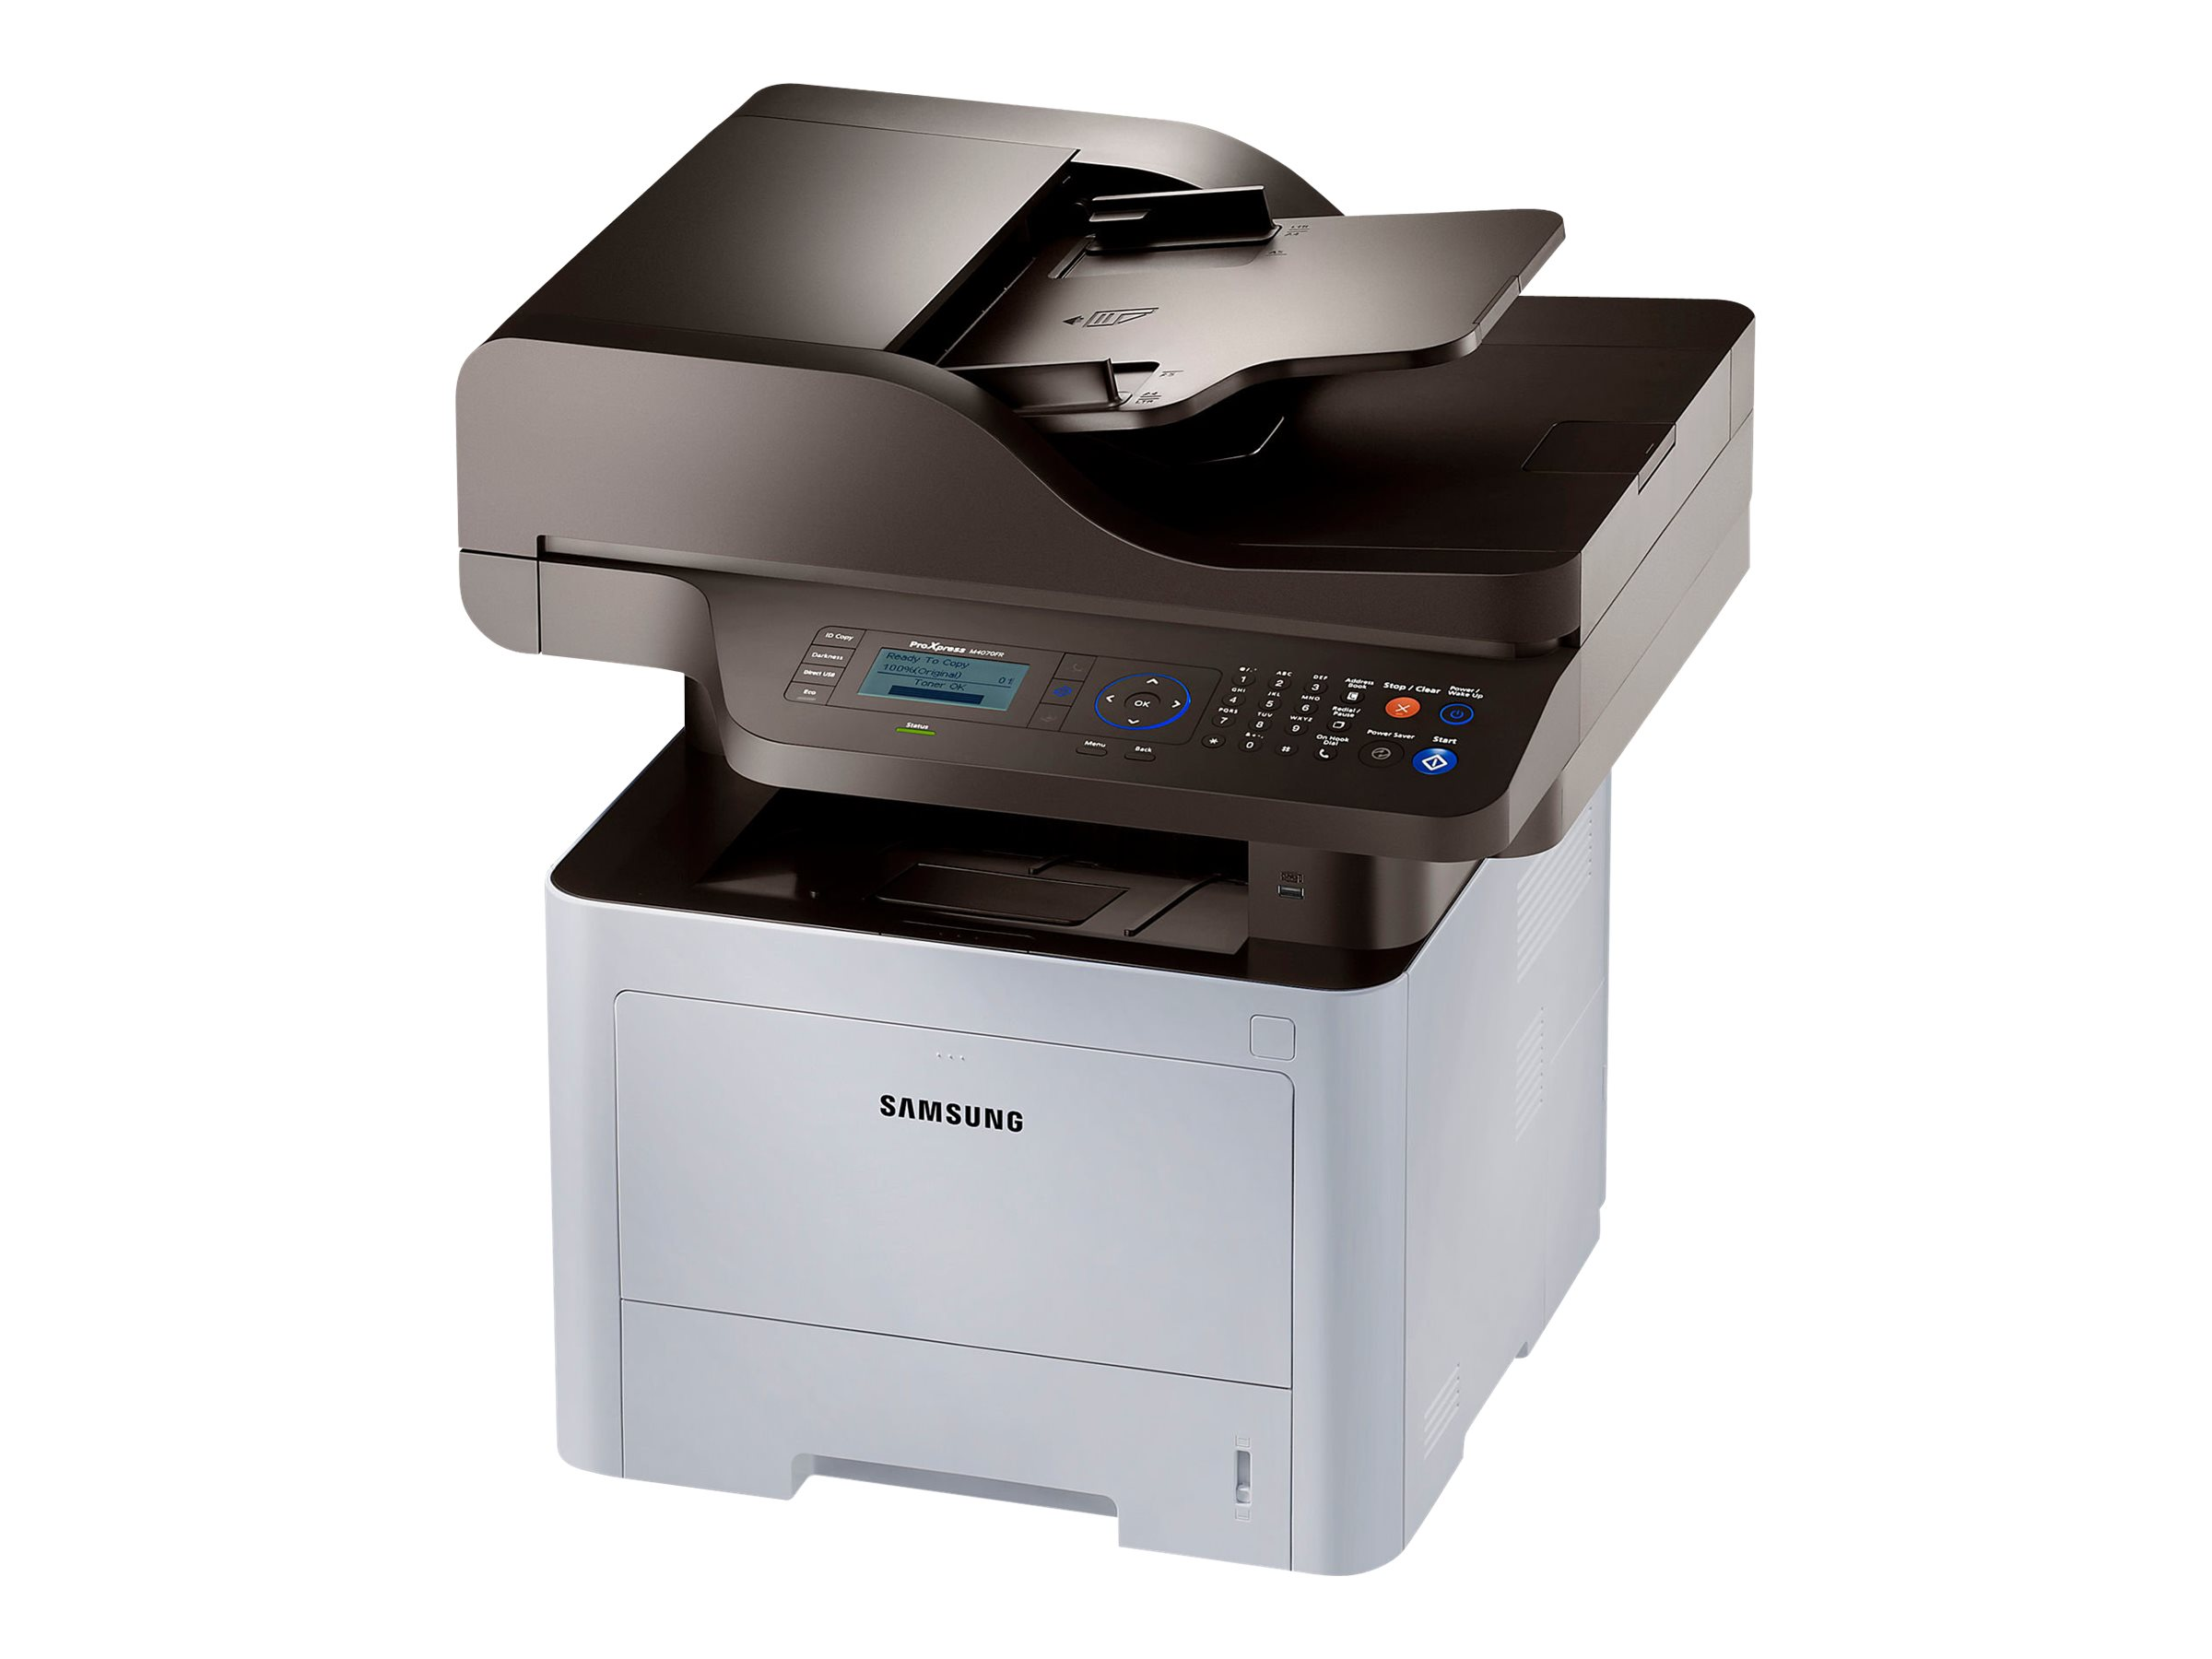 HP Samsung ProXpress SL-M4070FR - Multifunktionsdrucker - s/w - Laser - A4 (210 x 297 mm)